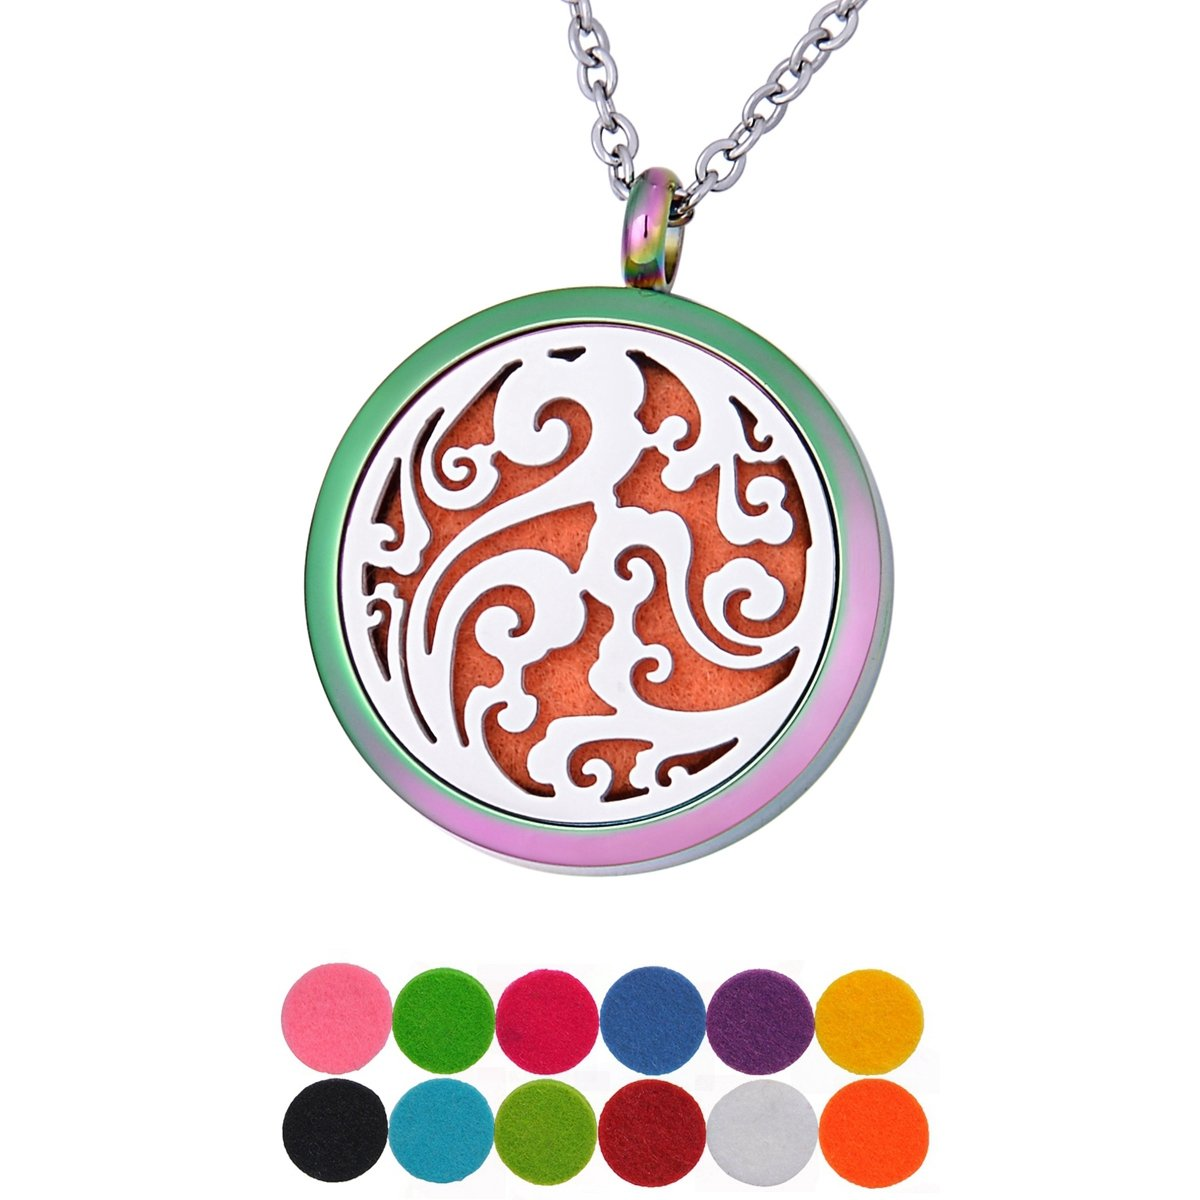 QX Essential Oil Diffuser Necklace Clouds Aromatherapy Locket Pendant Jewelry Teen Girls Gifts - Round 30mm